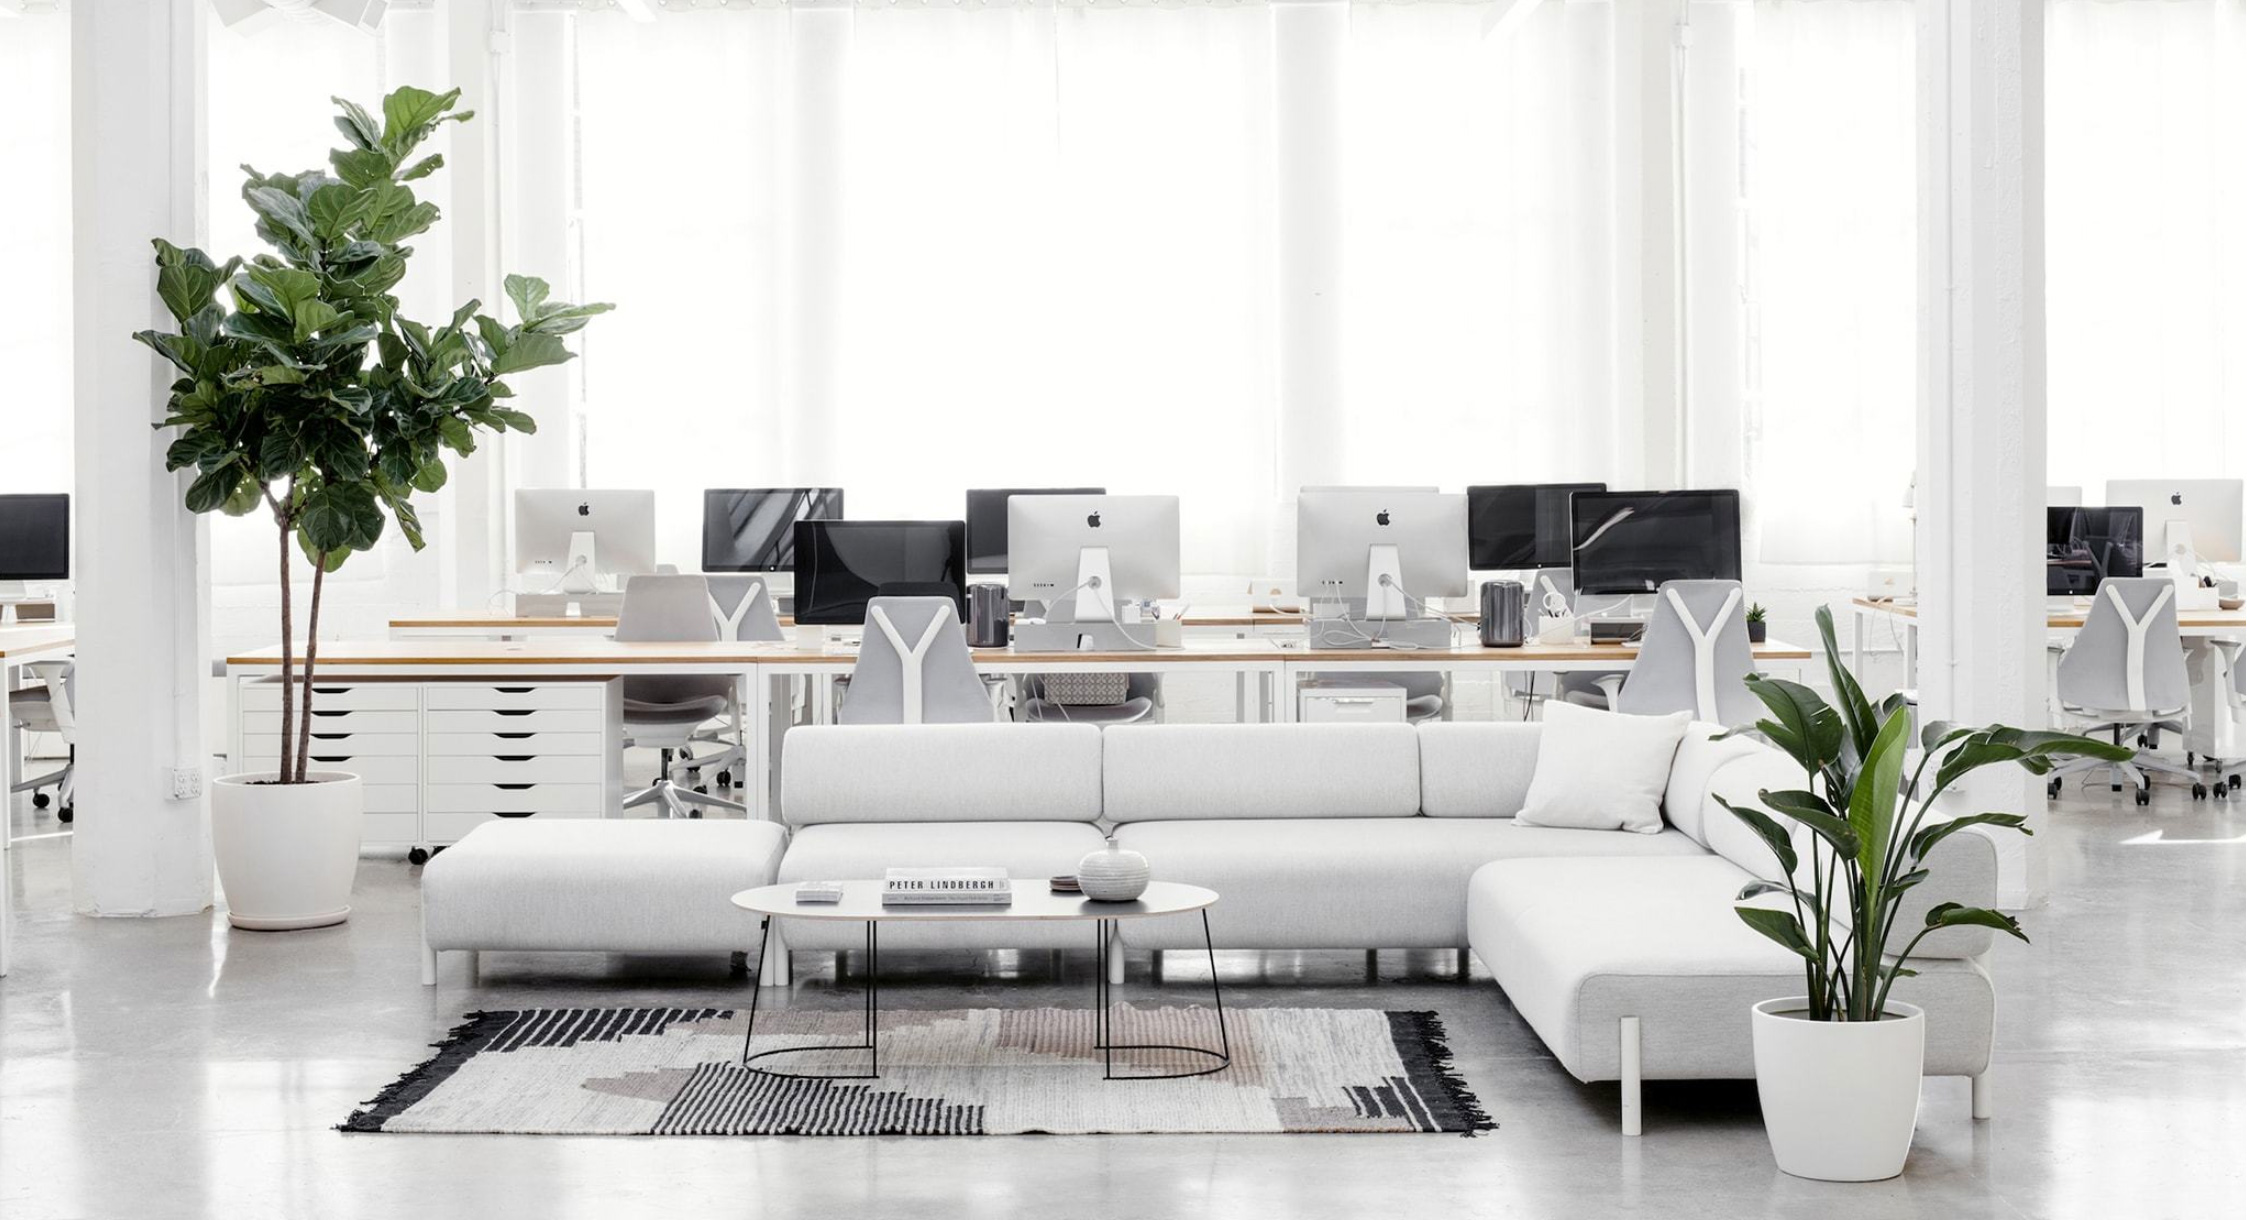 How To Design A Great Office Space